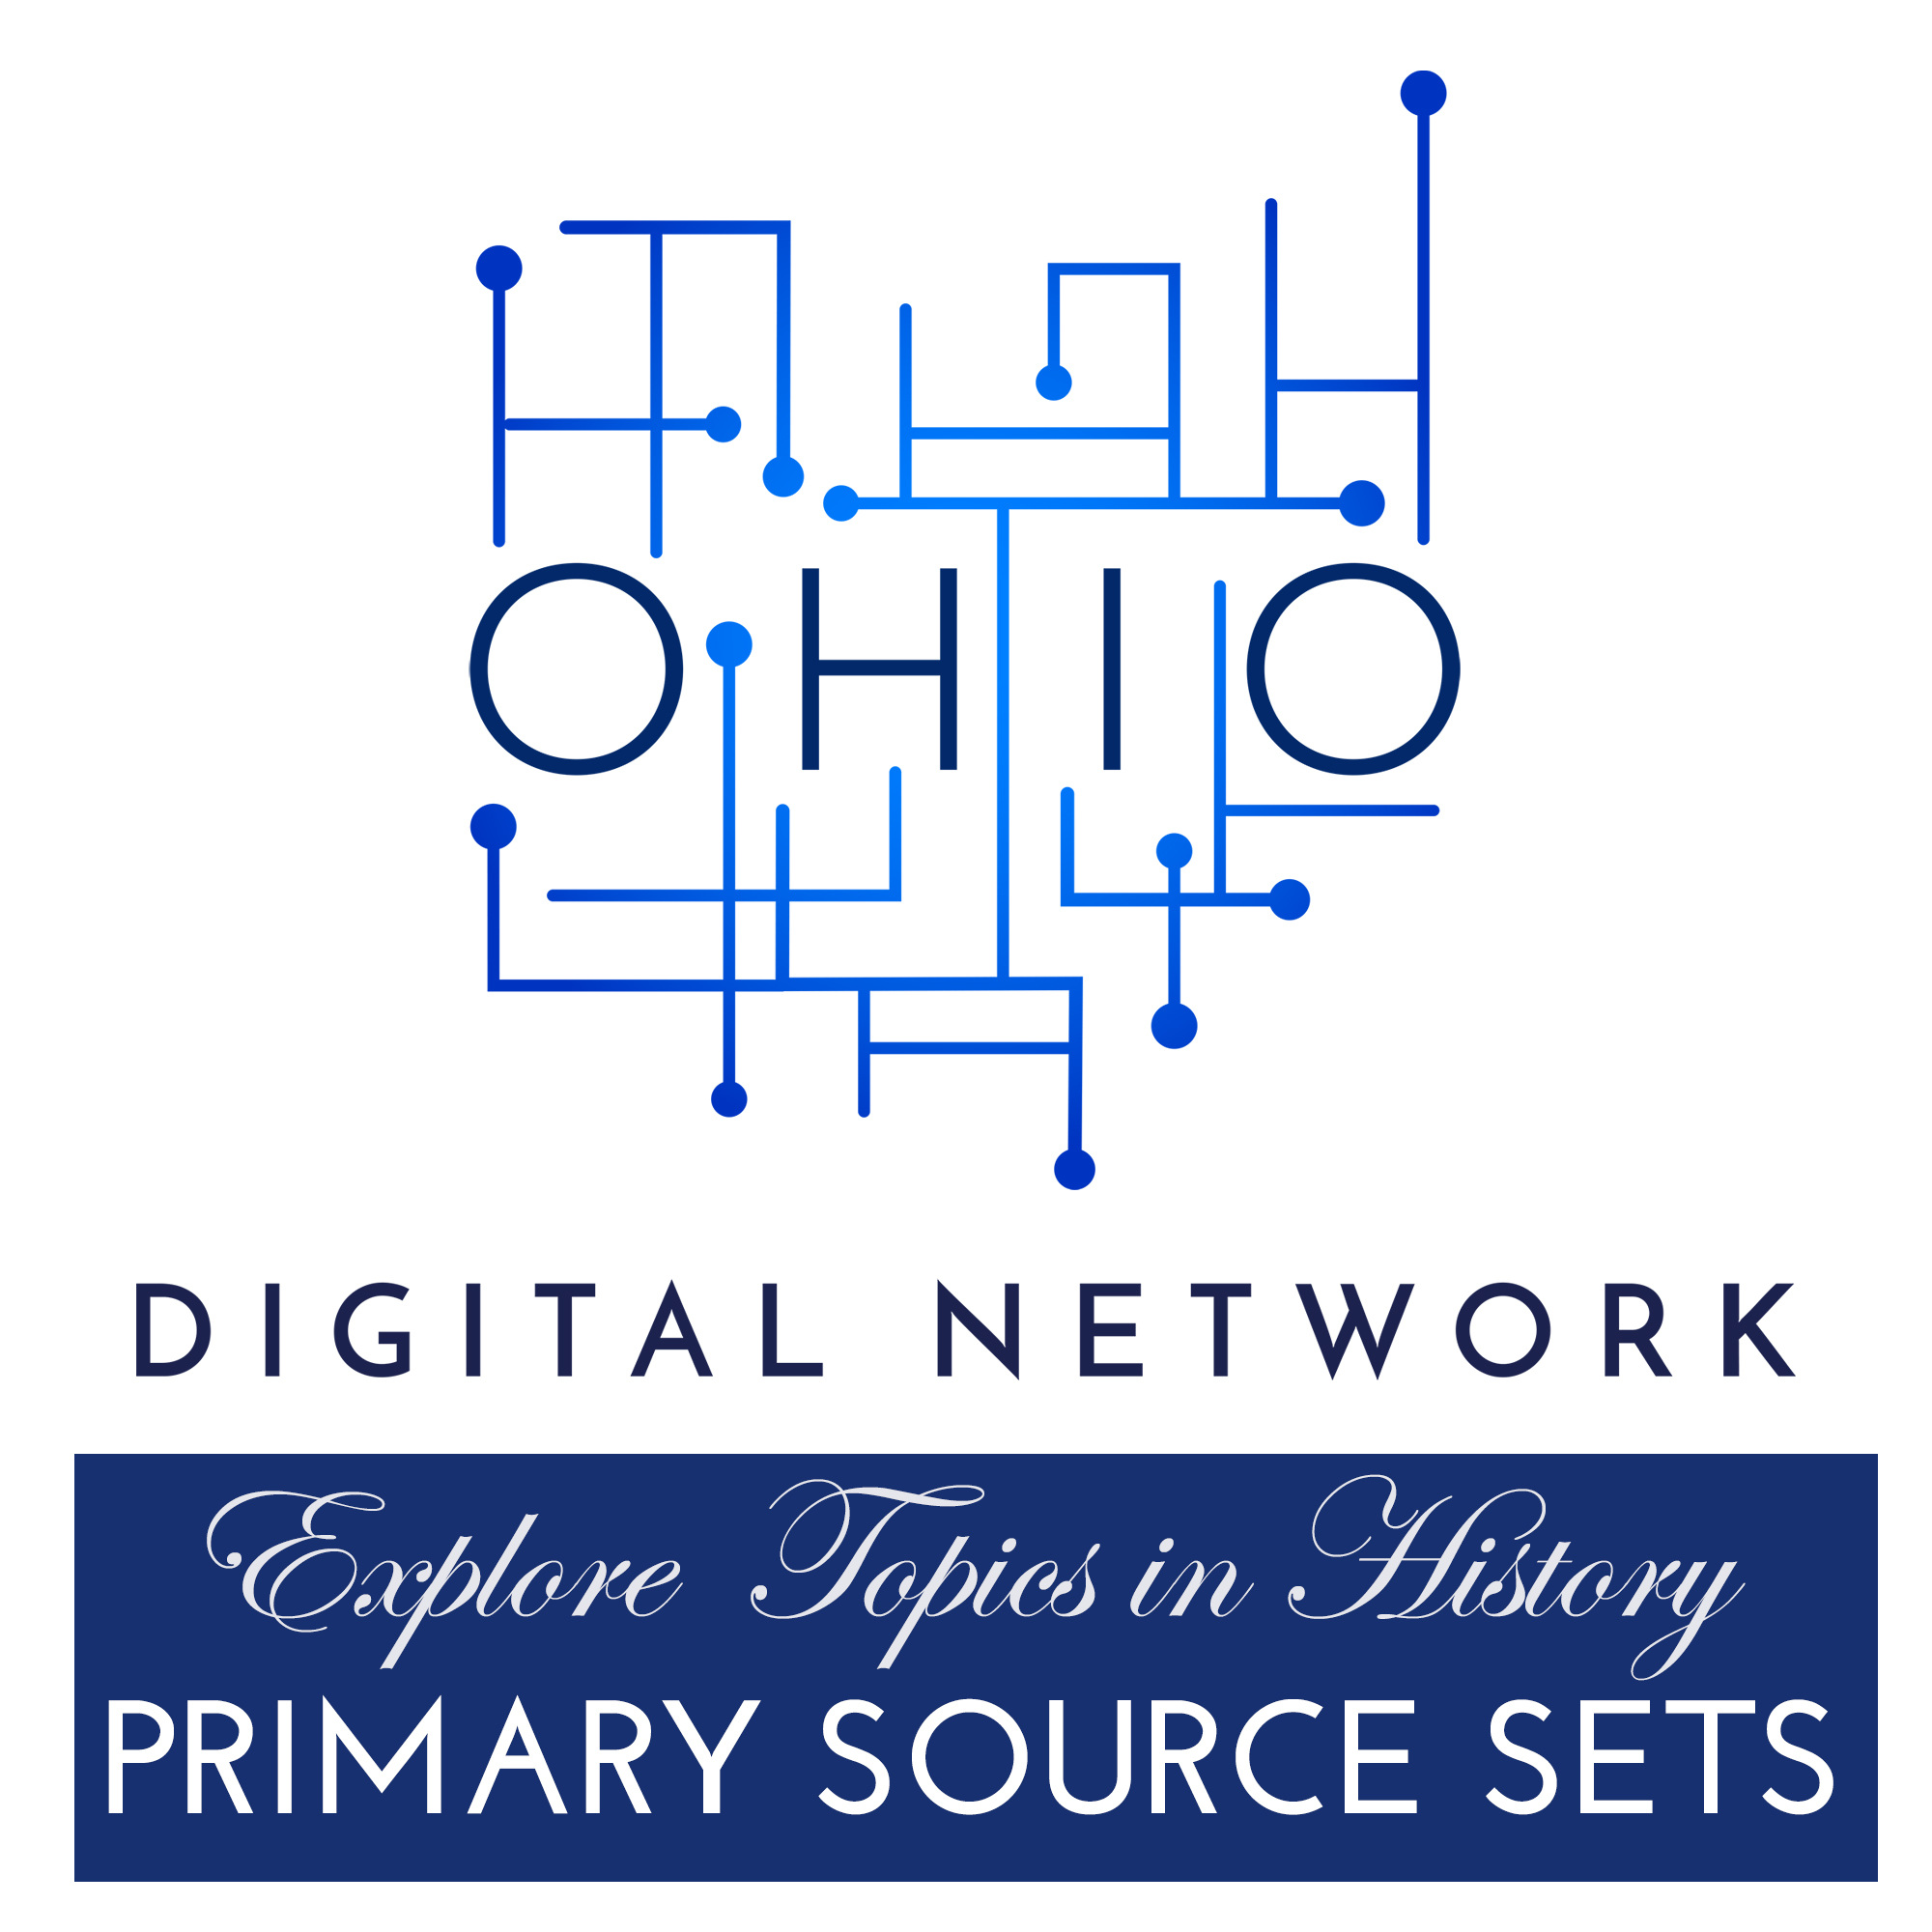 Ohio Digital Network logo and Primary Source Sets text